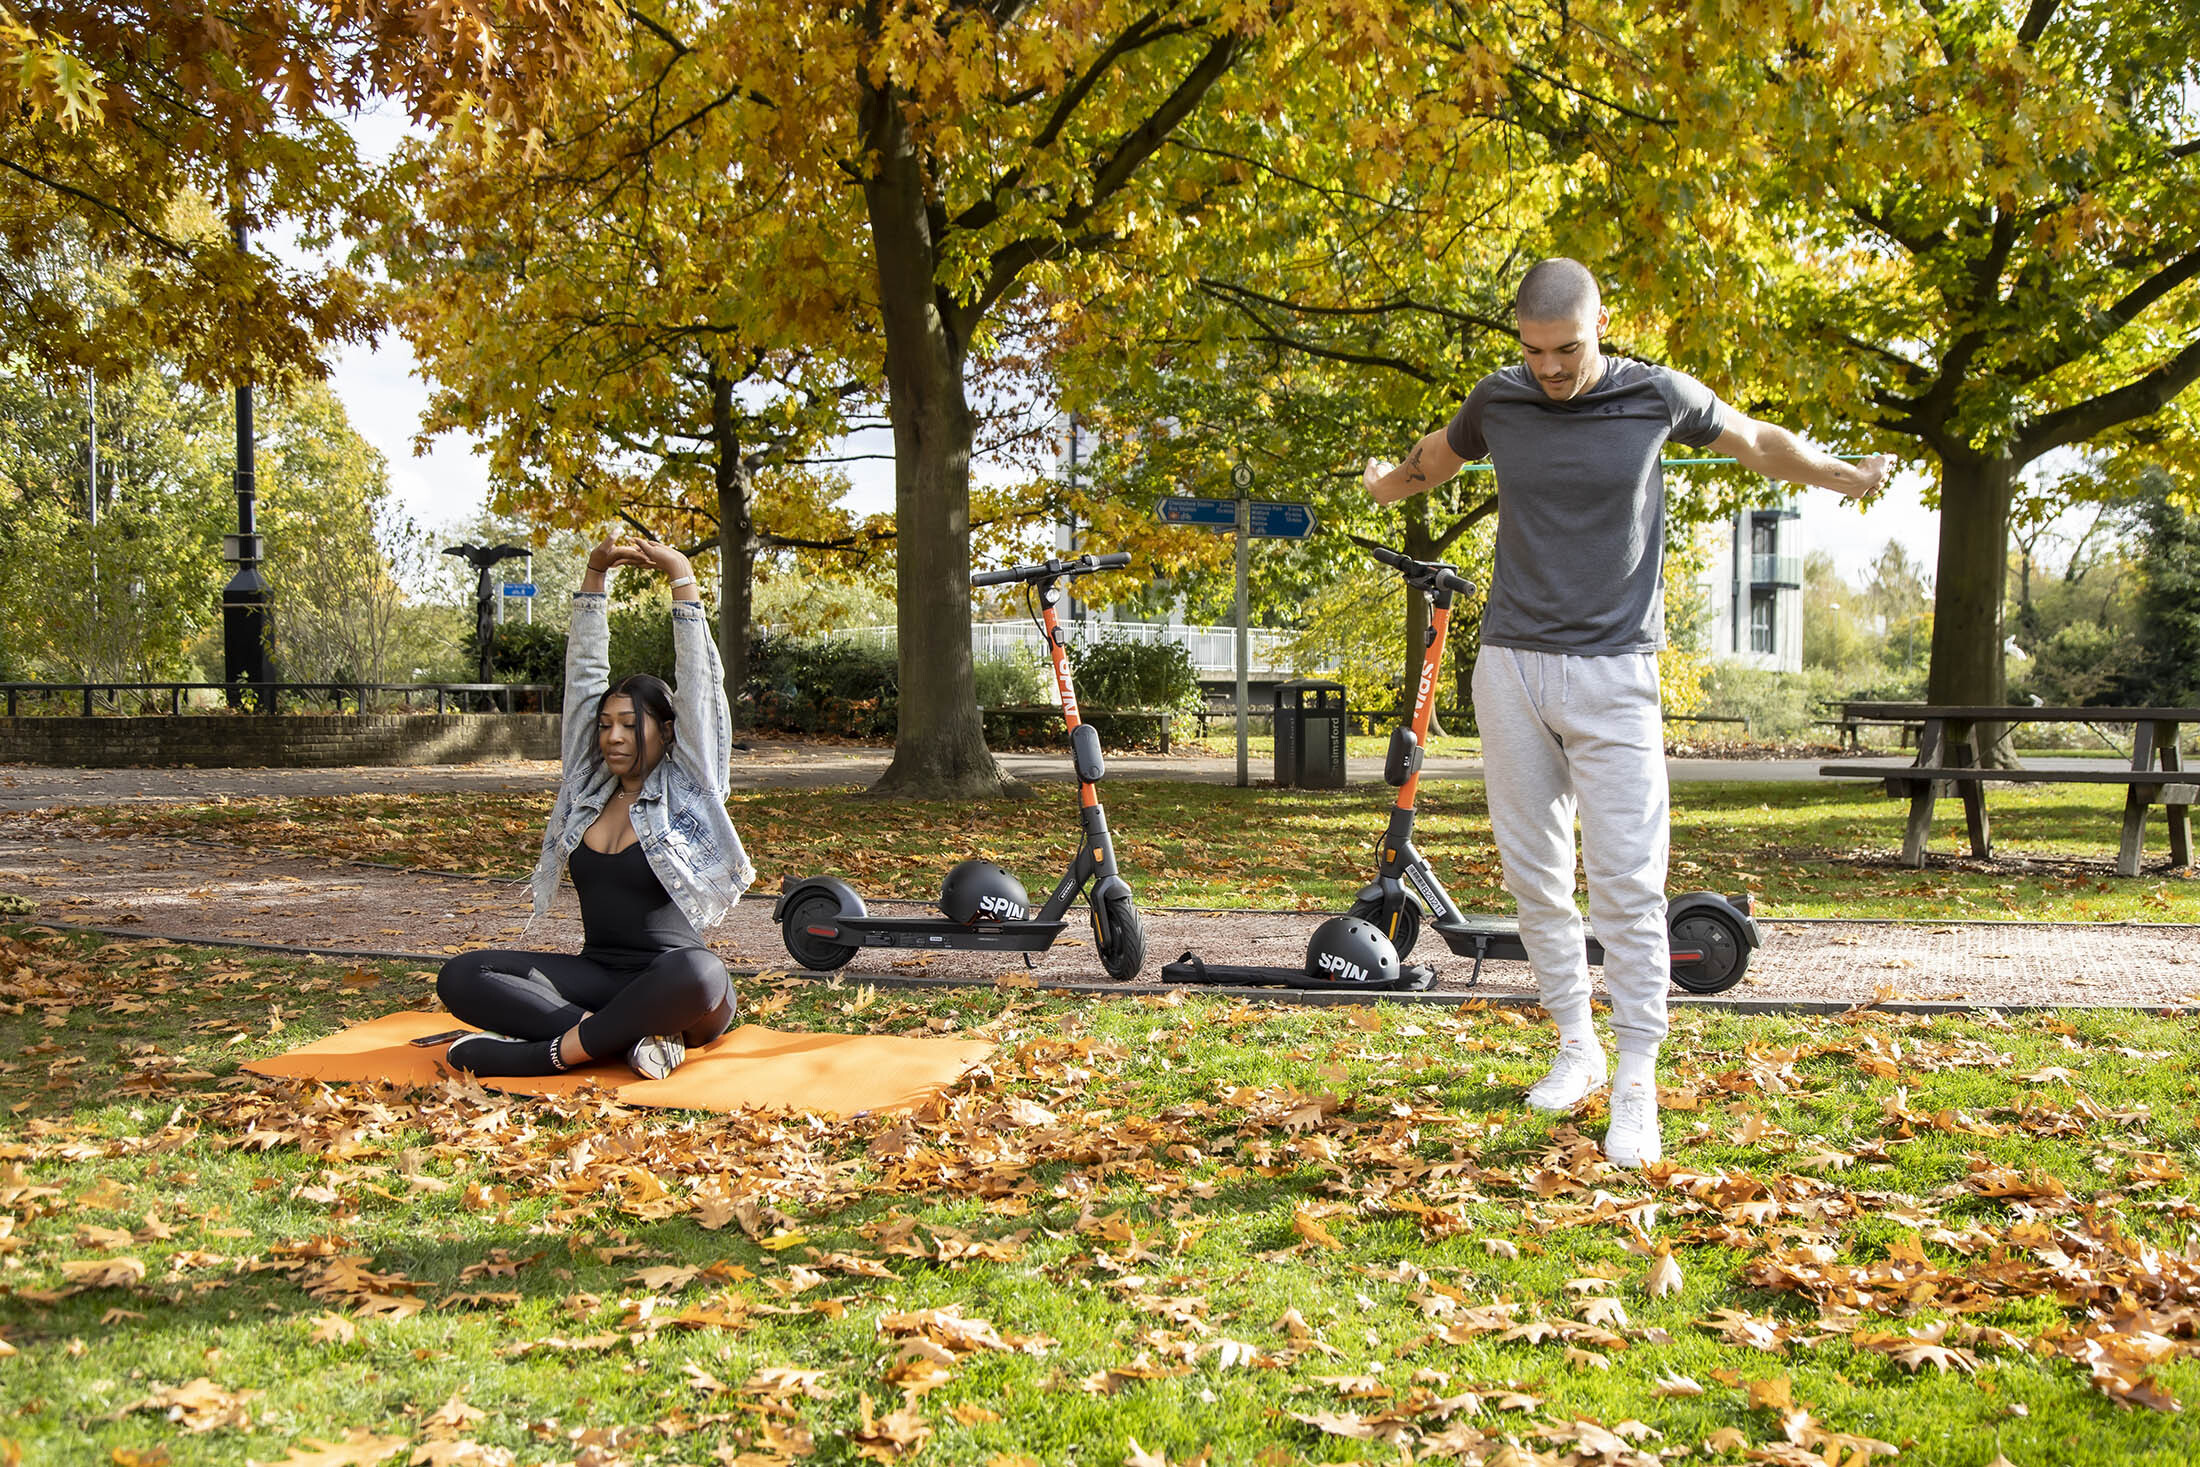 A man and a woman stretch on the grass in a park with two scooters behind them